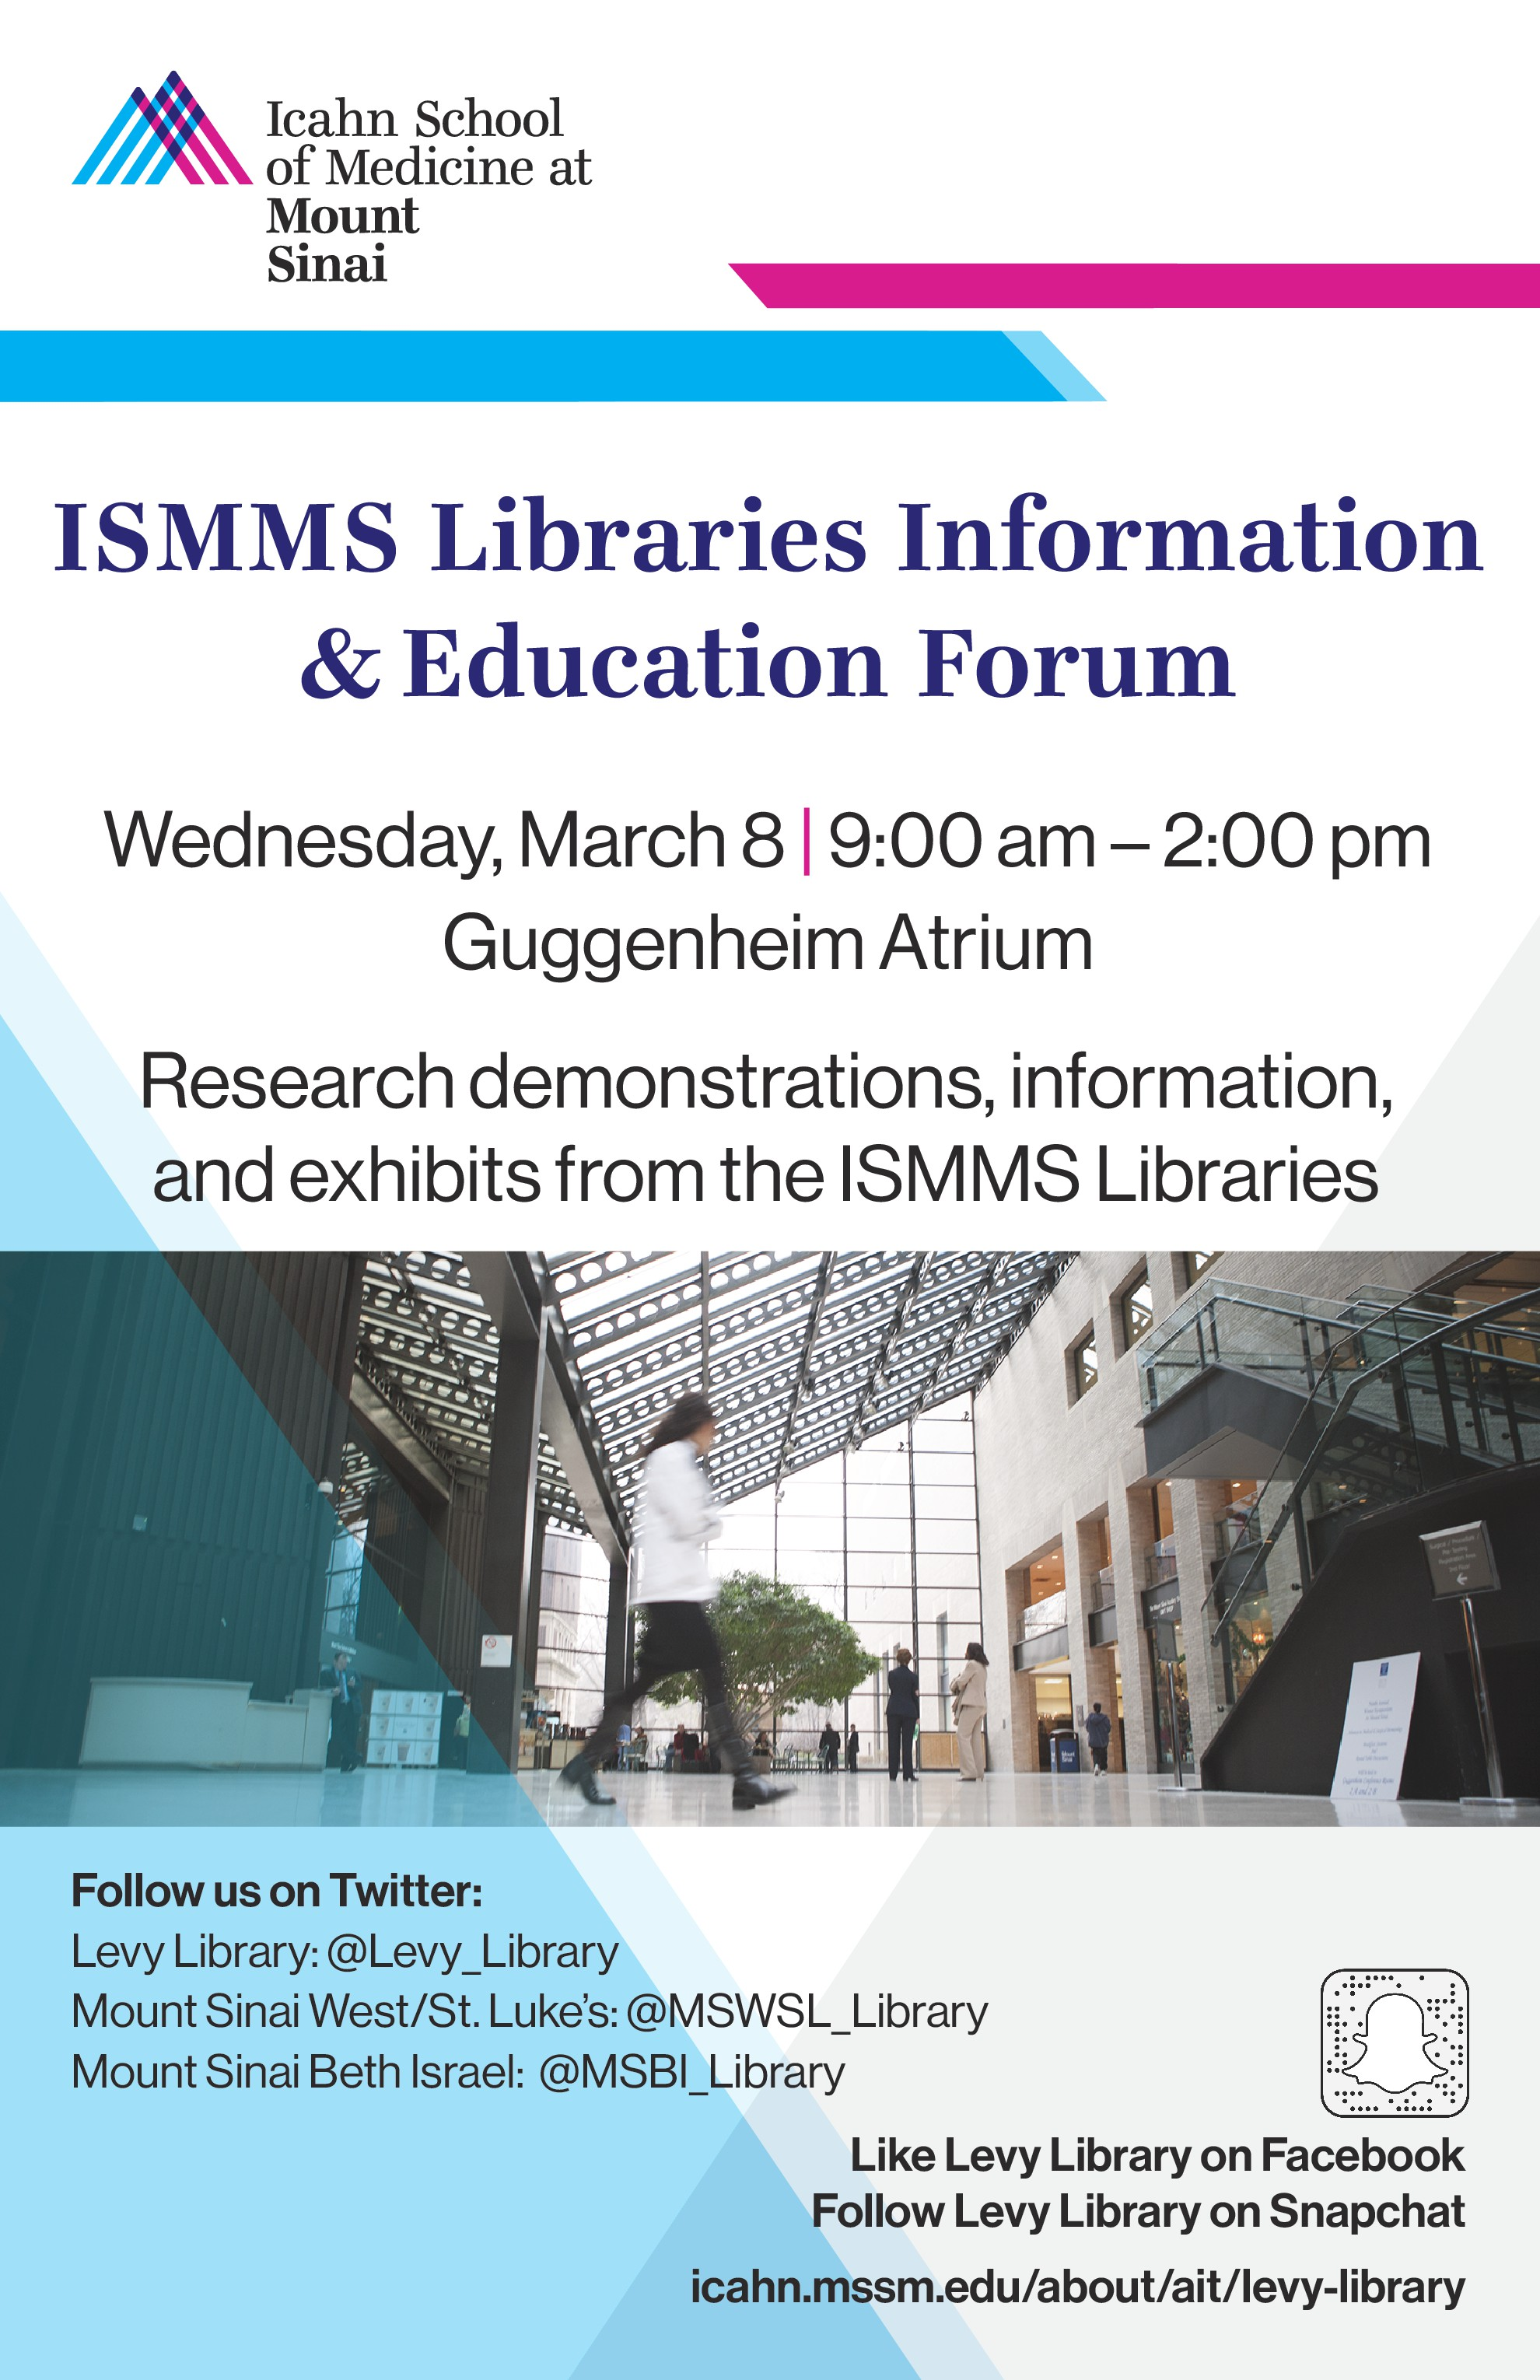 ISMMS Libraries Information & Education Forum